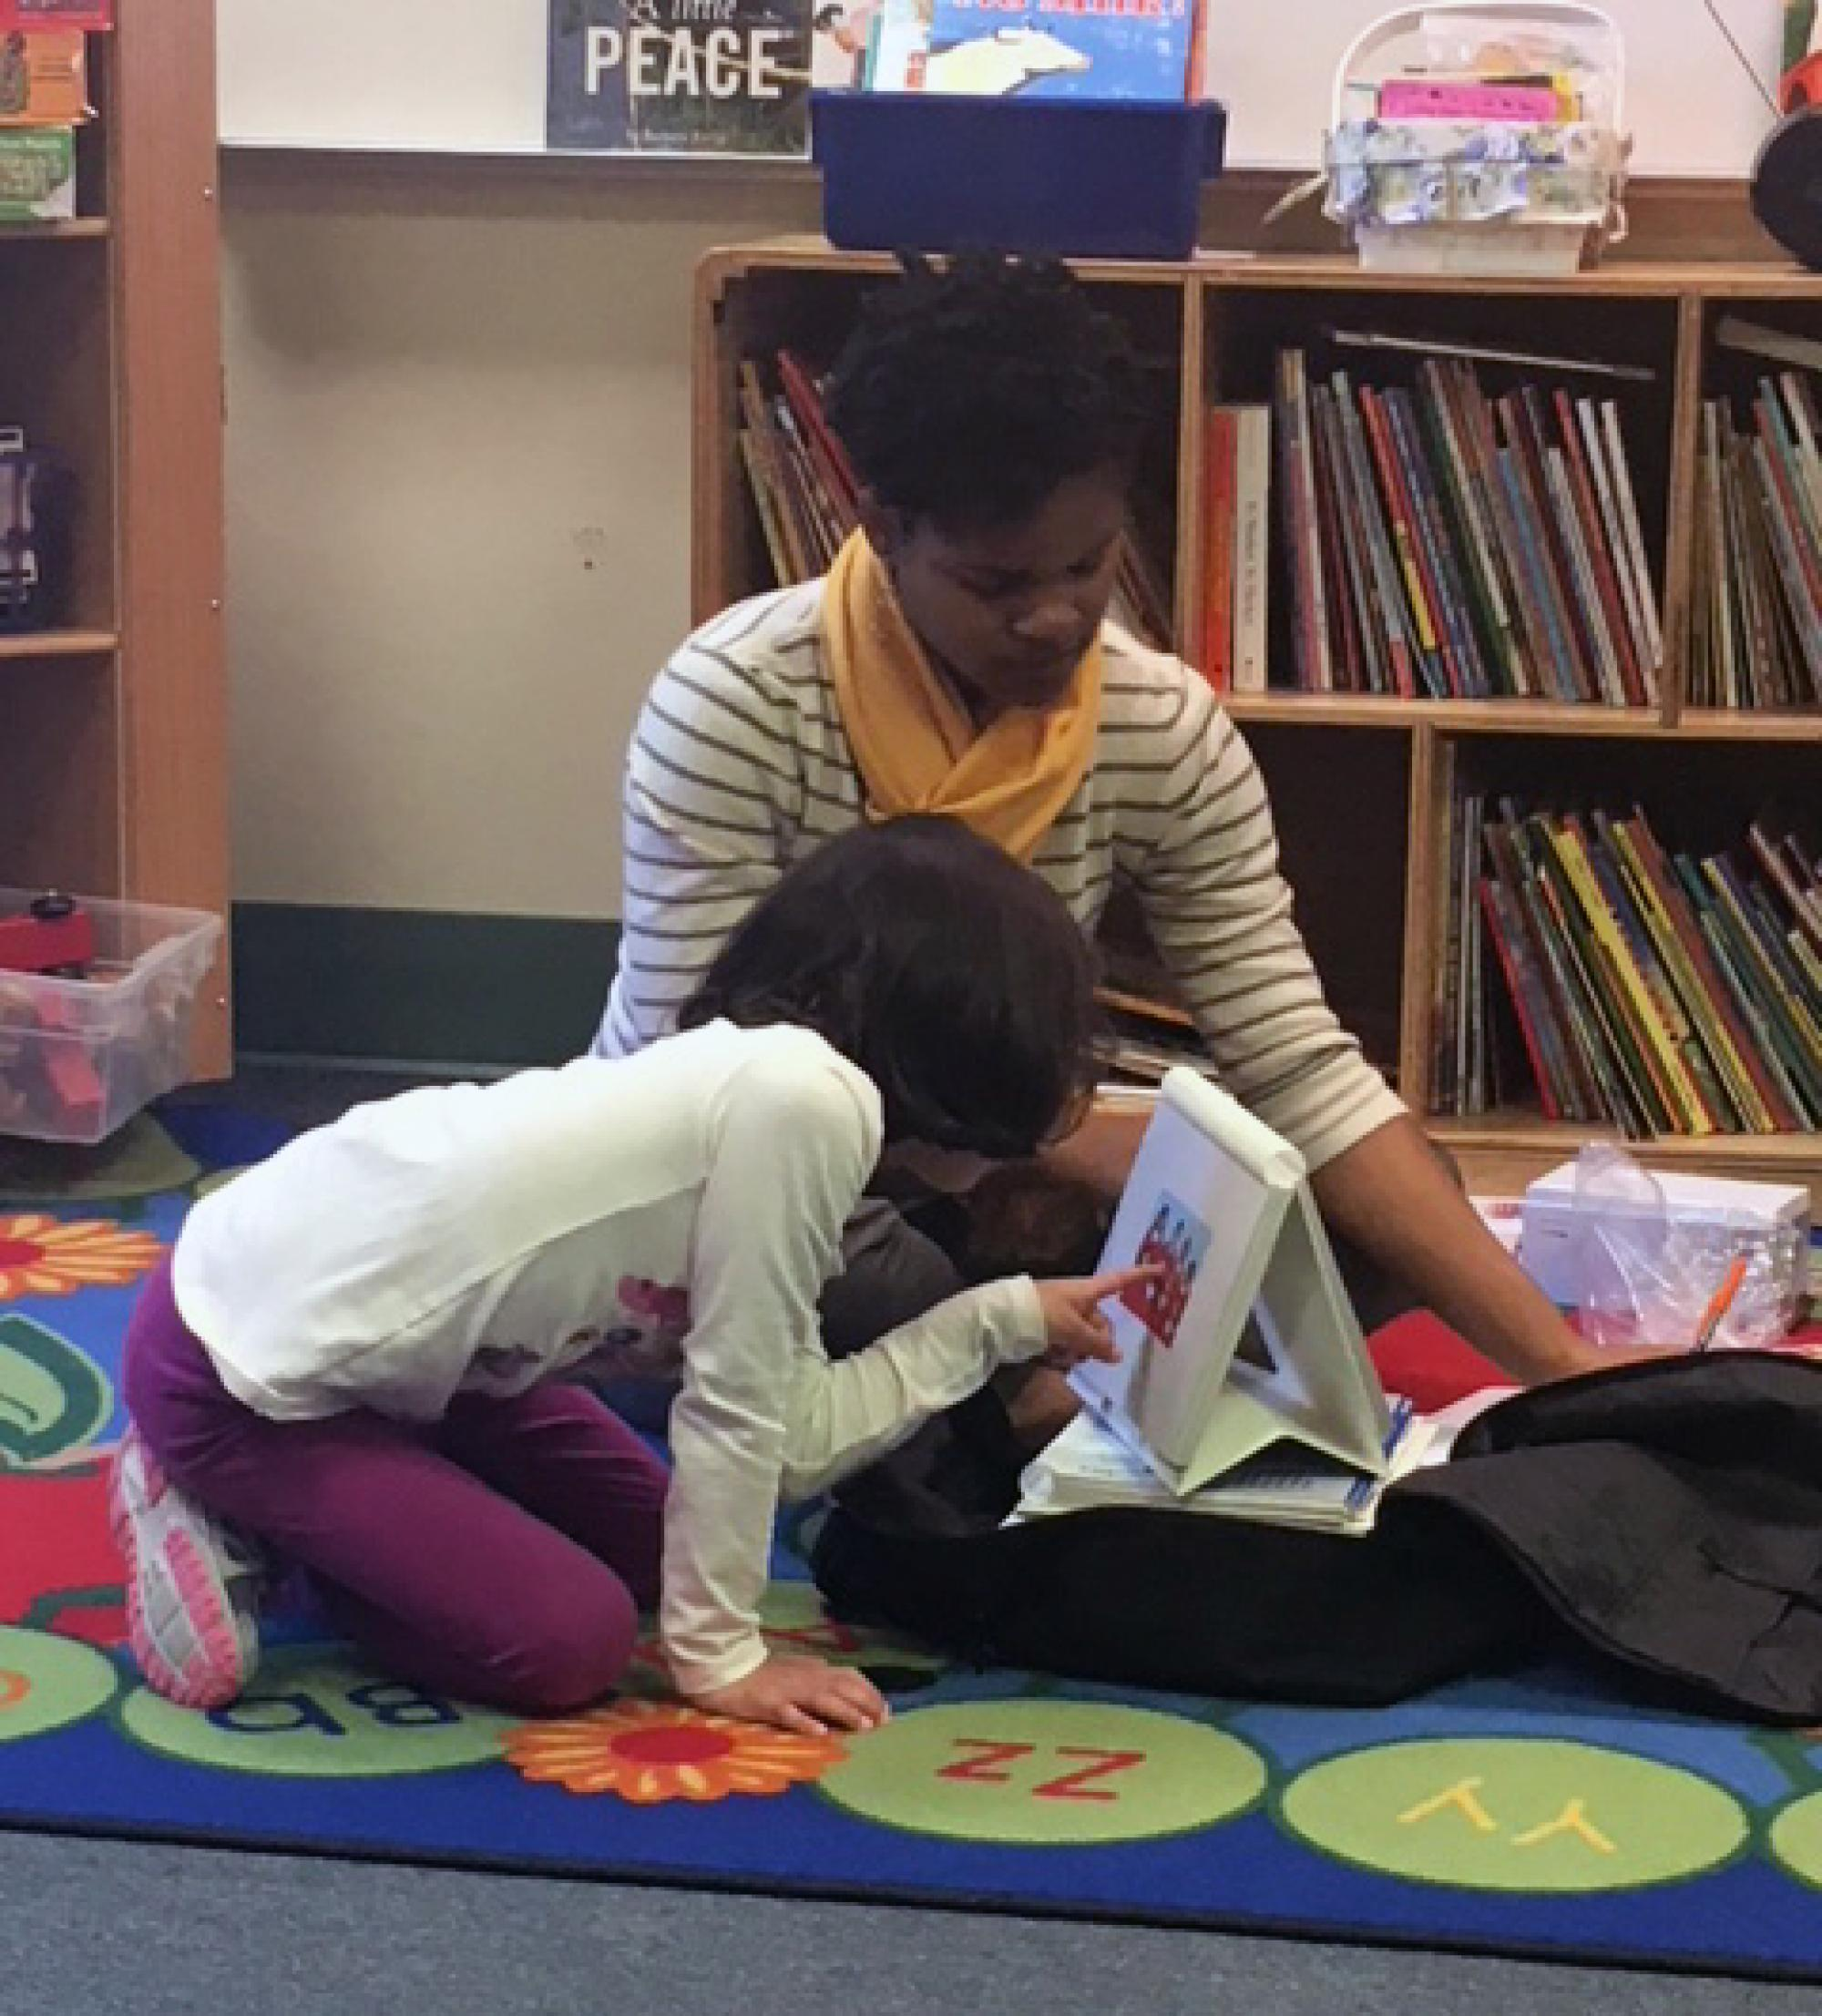 Chelsea Privette, a doctoral student in the  Department of Speech, Language and Hearing Sciences, works with a bilingual student.